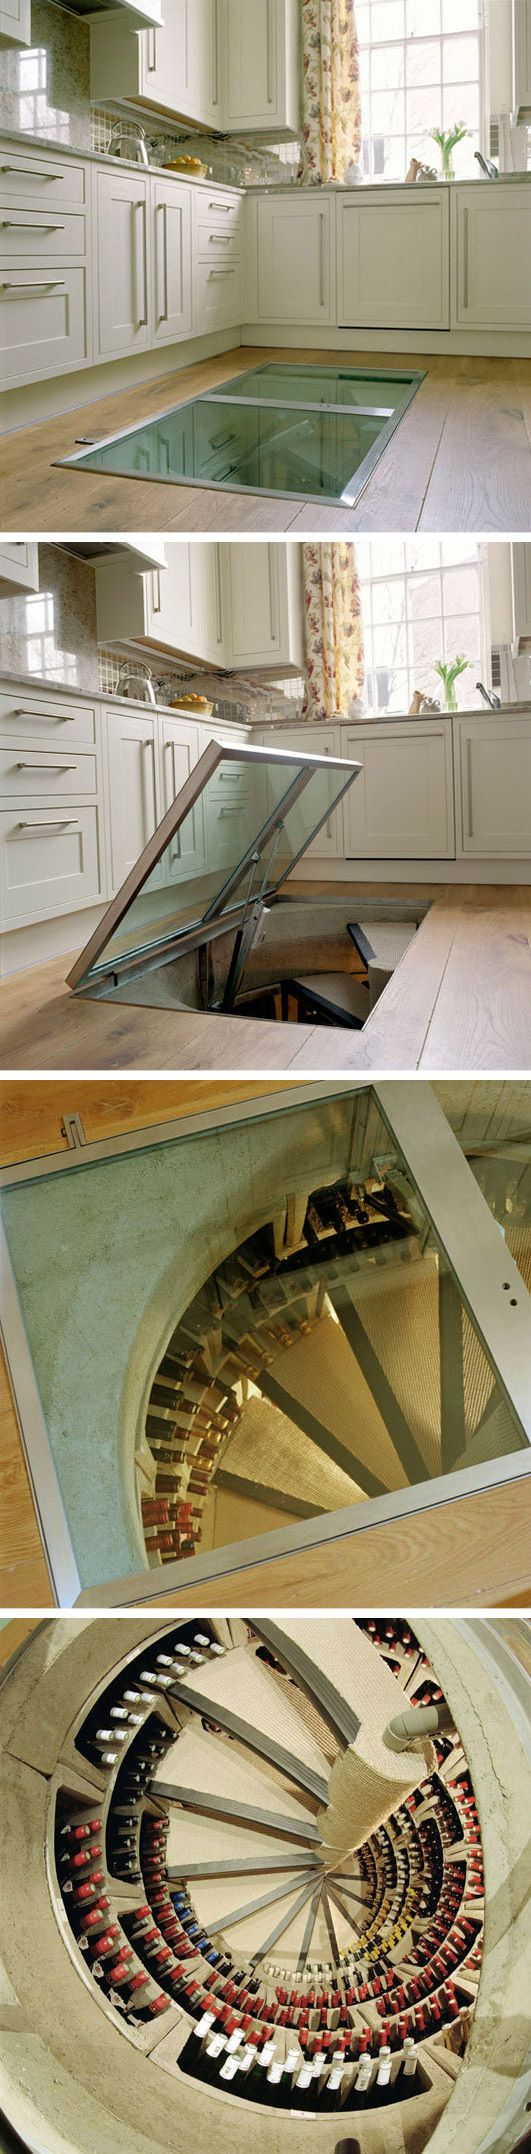 Trapdoor in the Kitchen Floor: Spiral Wine Cellars - seriously too cool